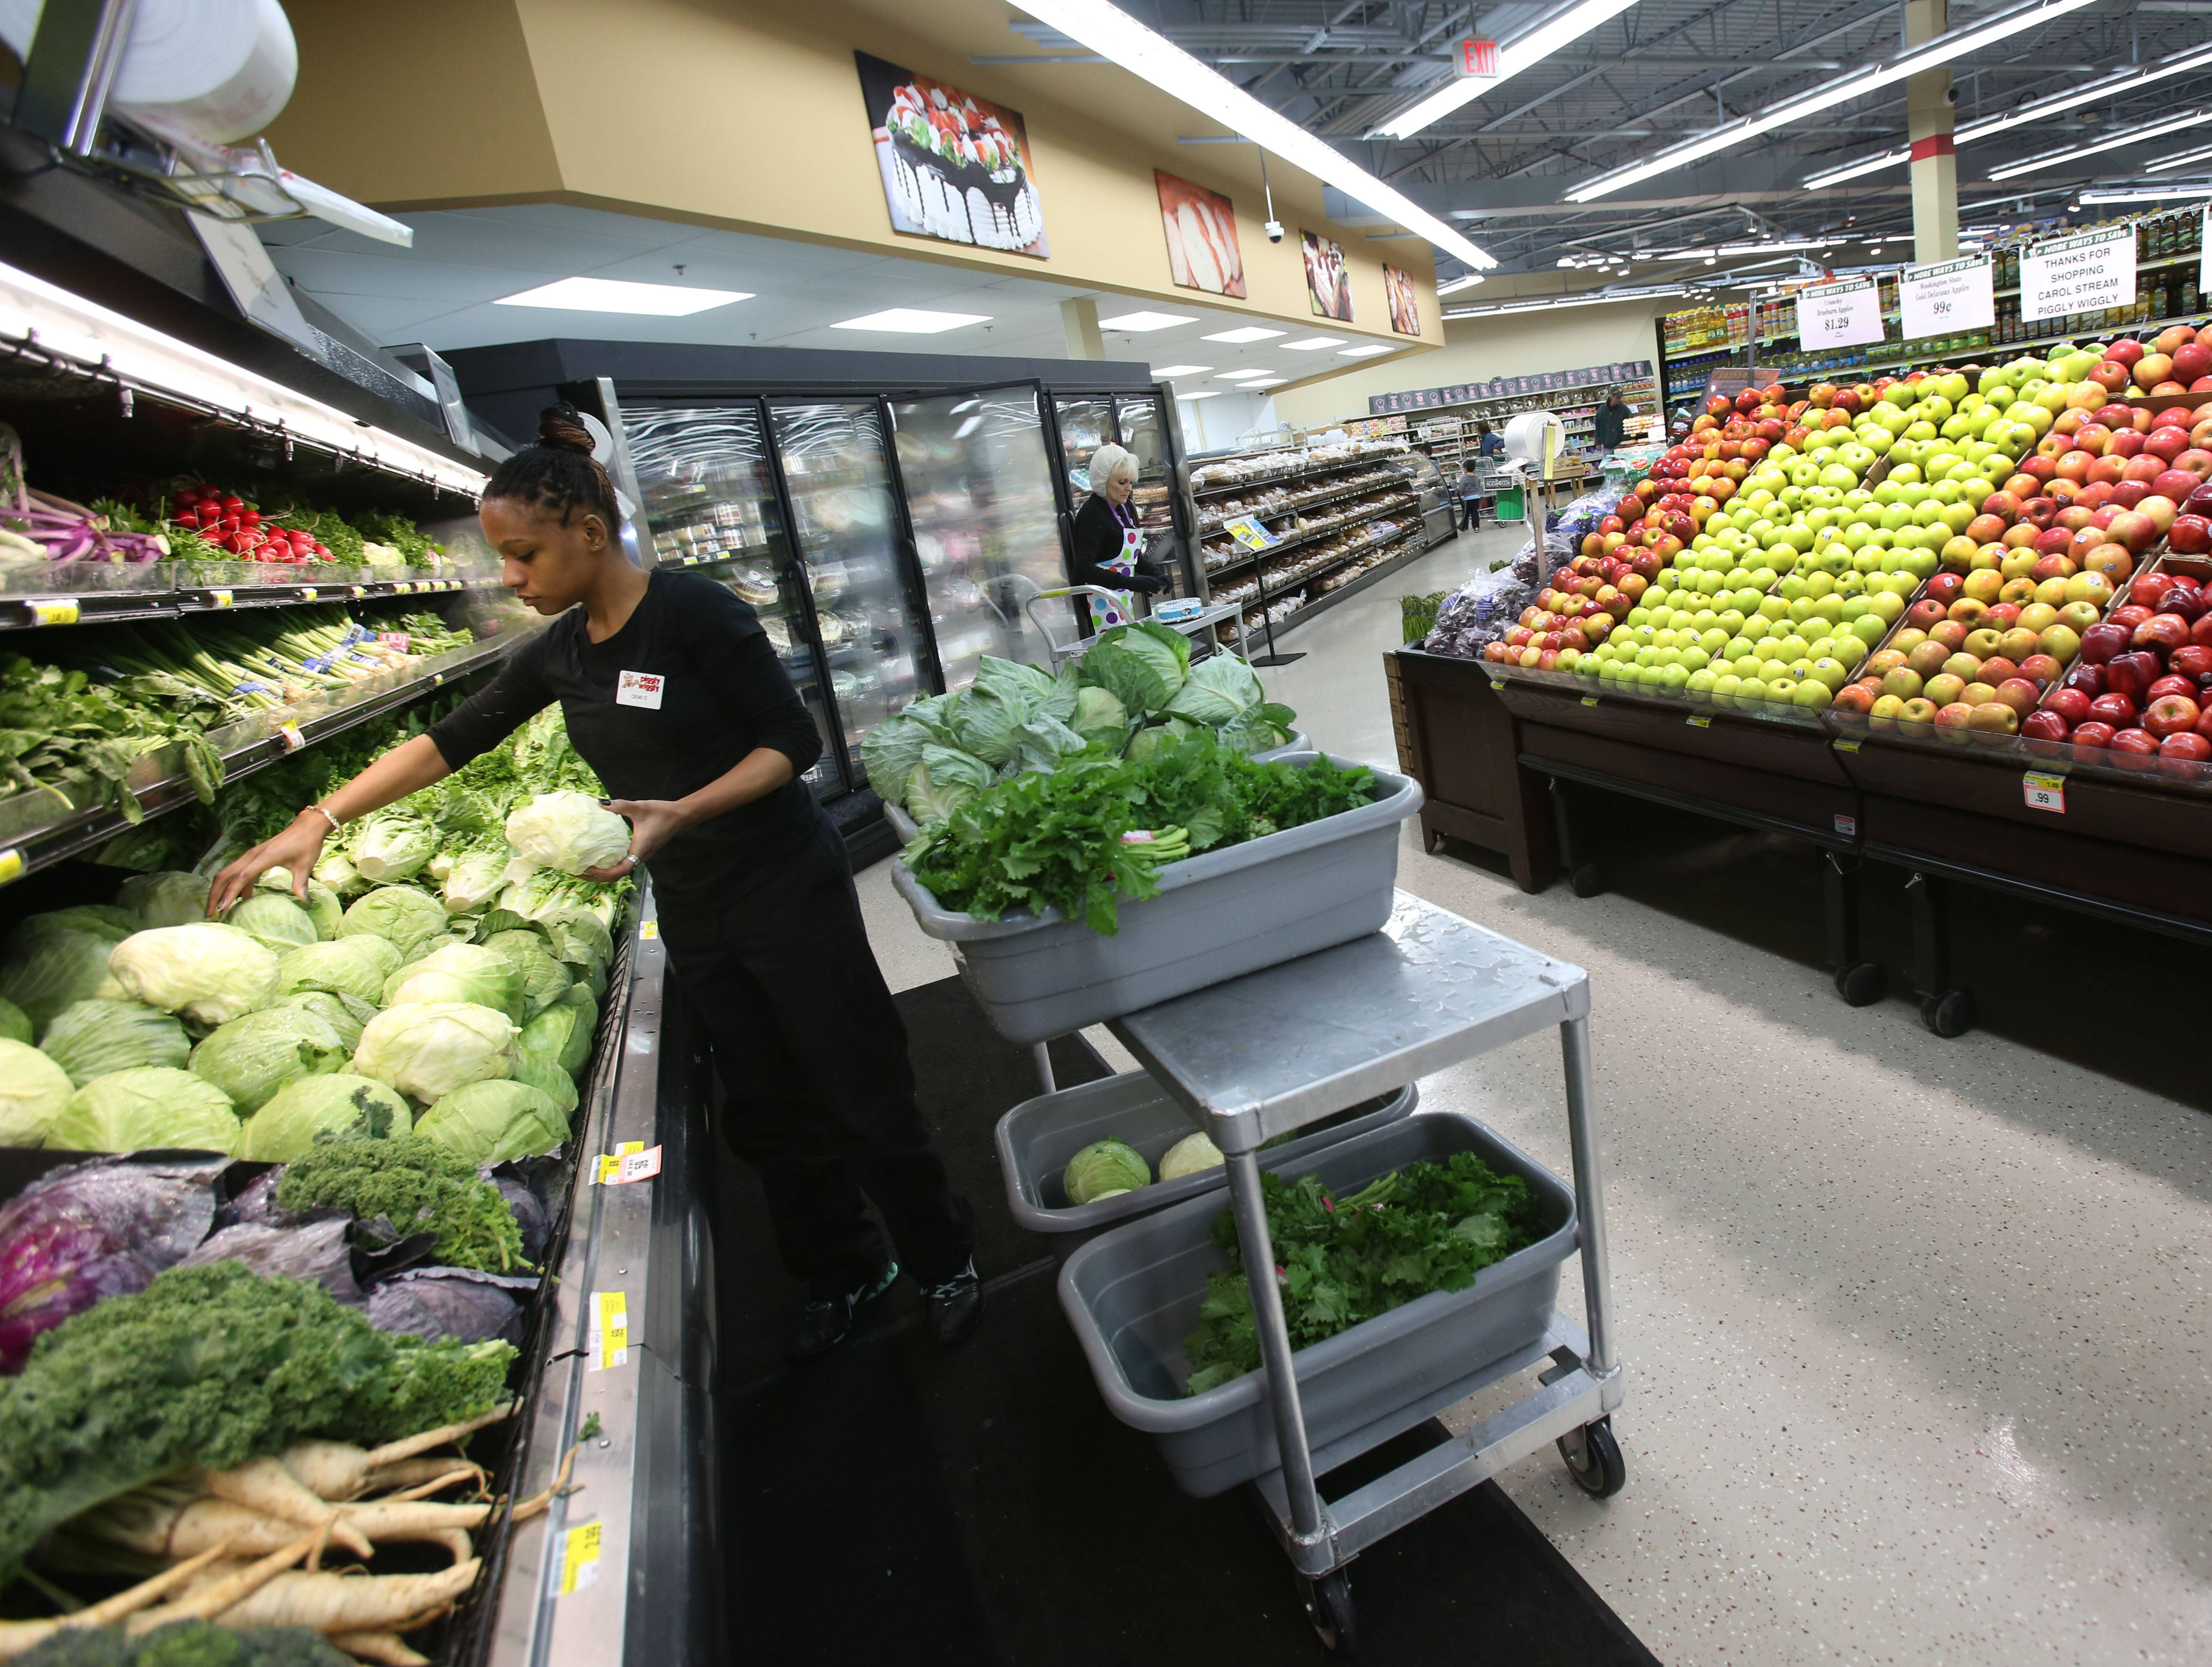 Demi Scott works in the produce department at the new Piggly Wiggly grocery store in Carol Stream.